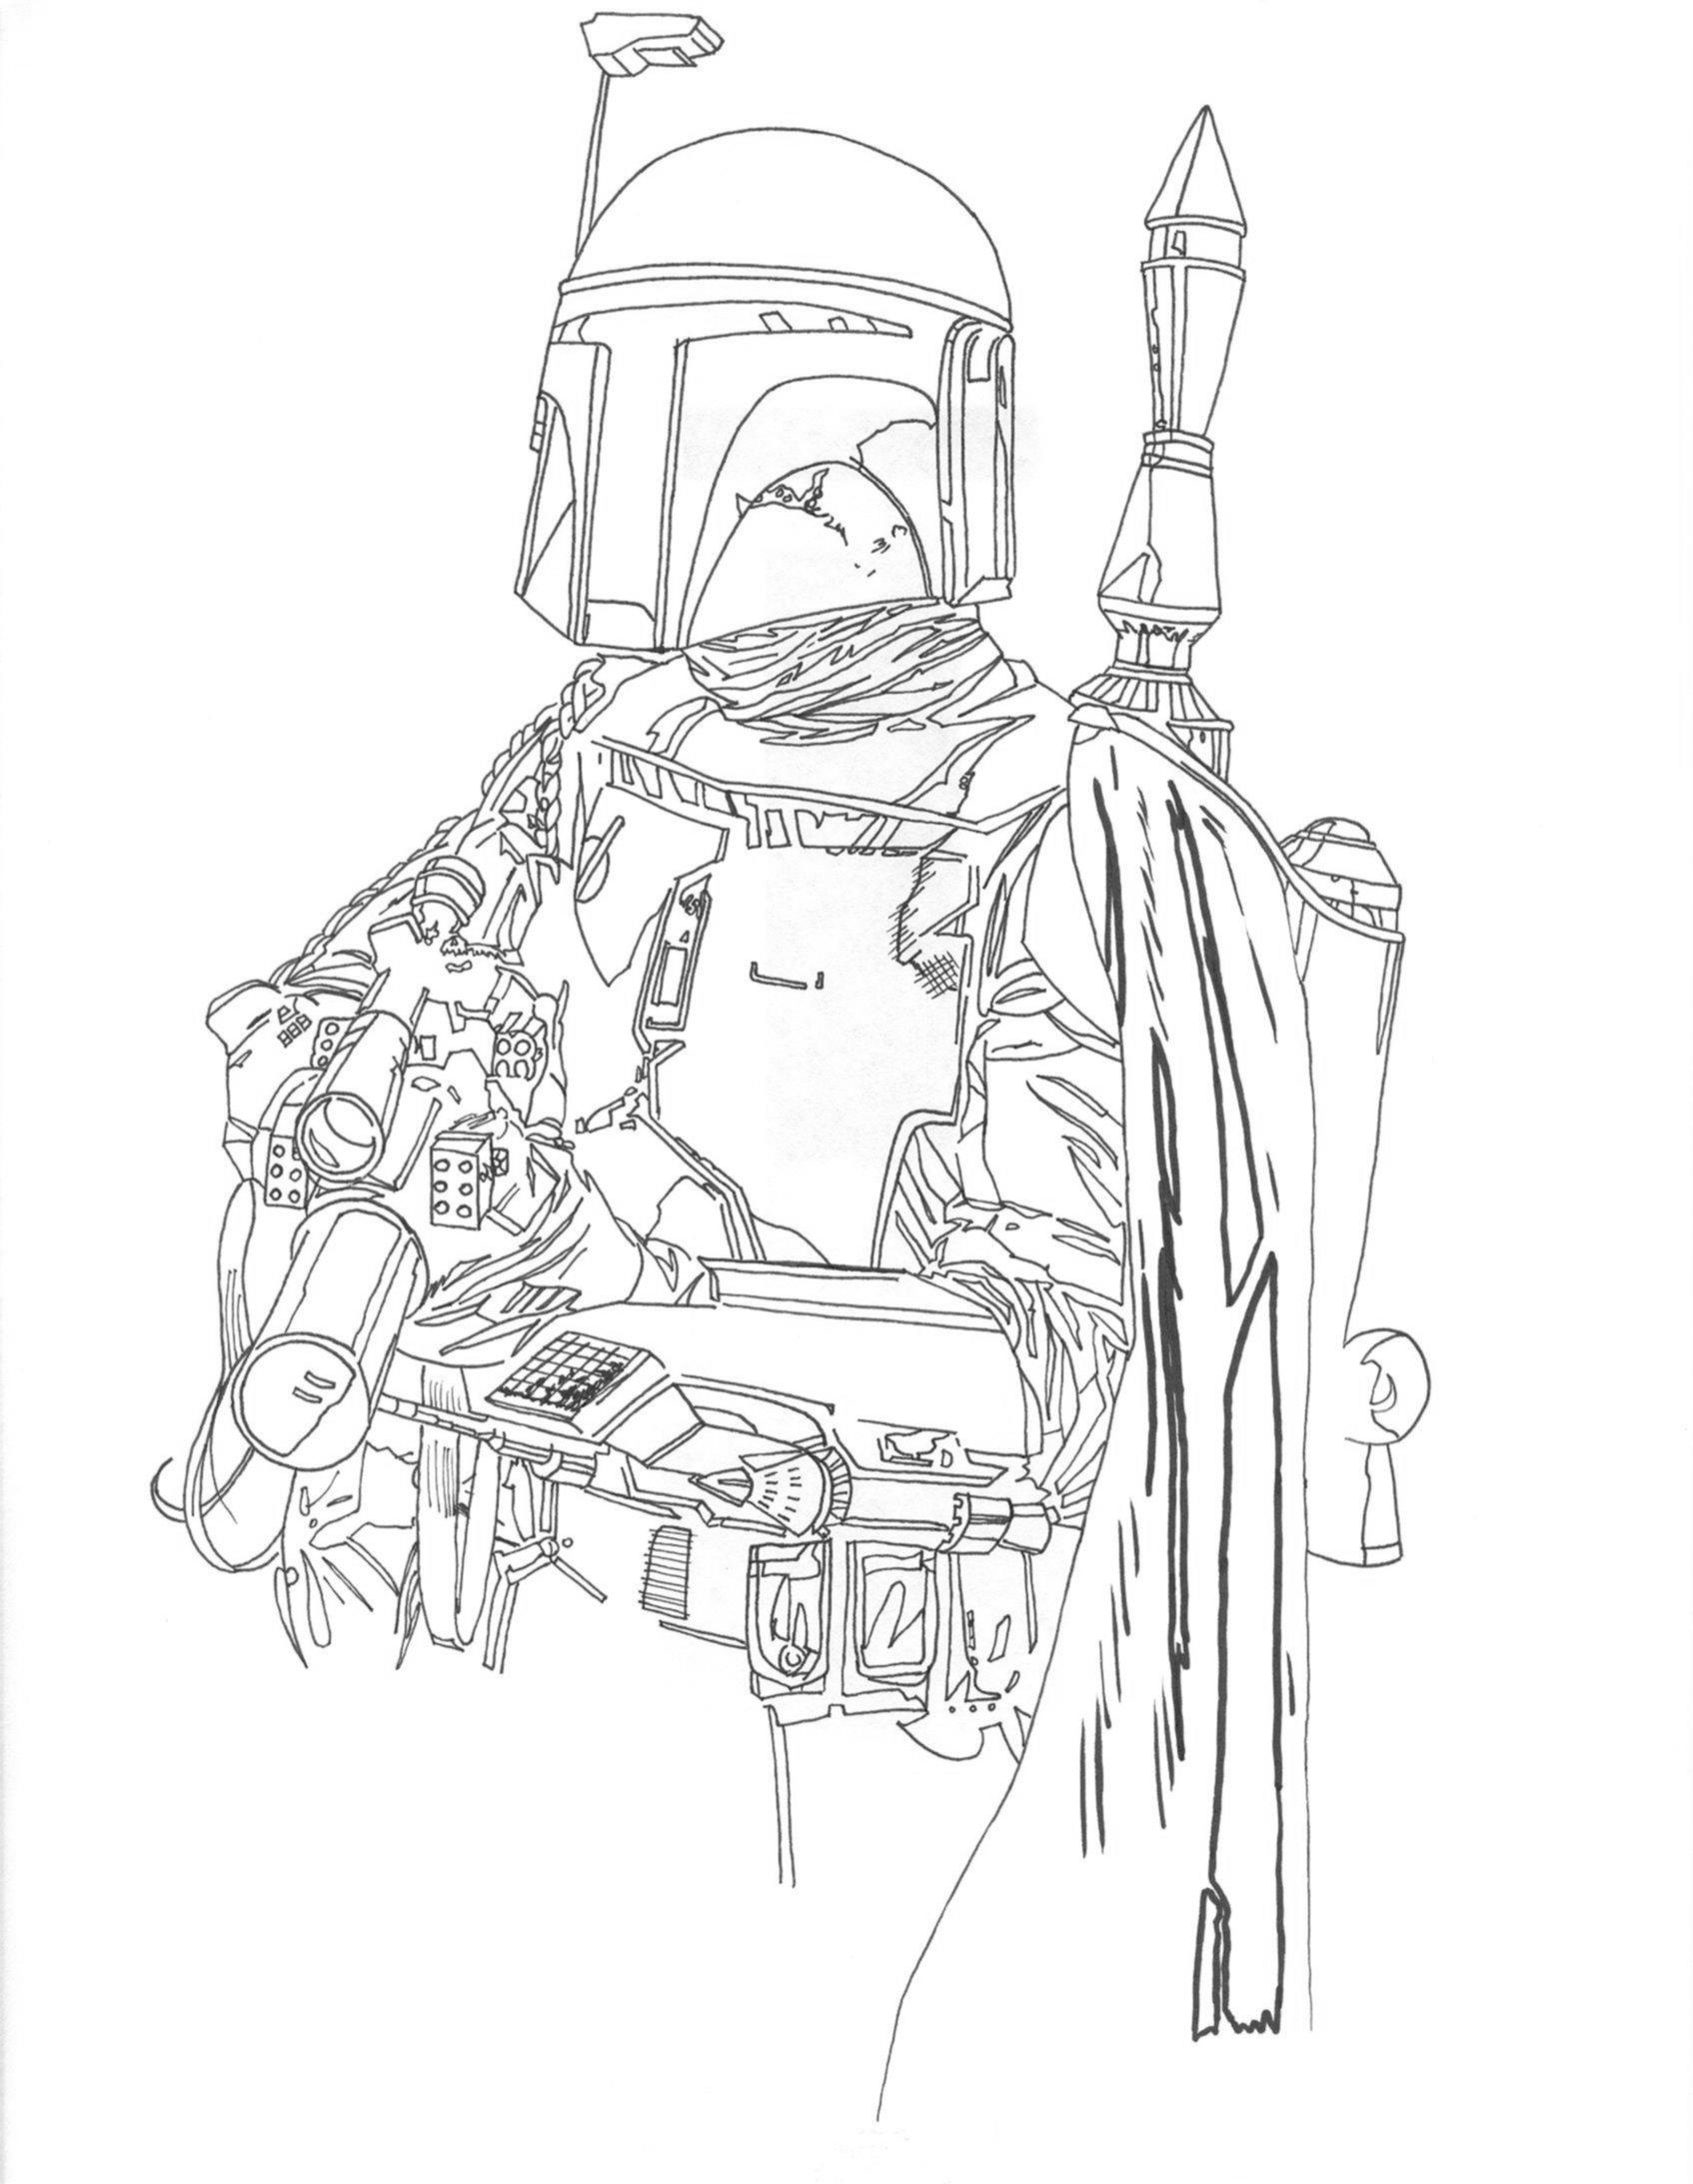 Clone Wars Coloring Pages – coloringkids.org